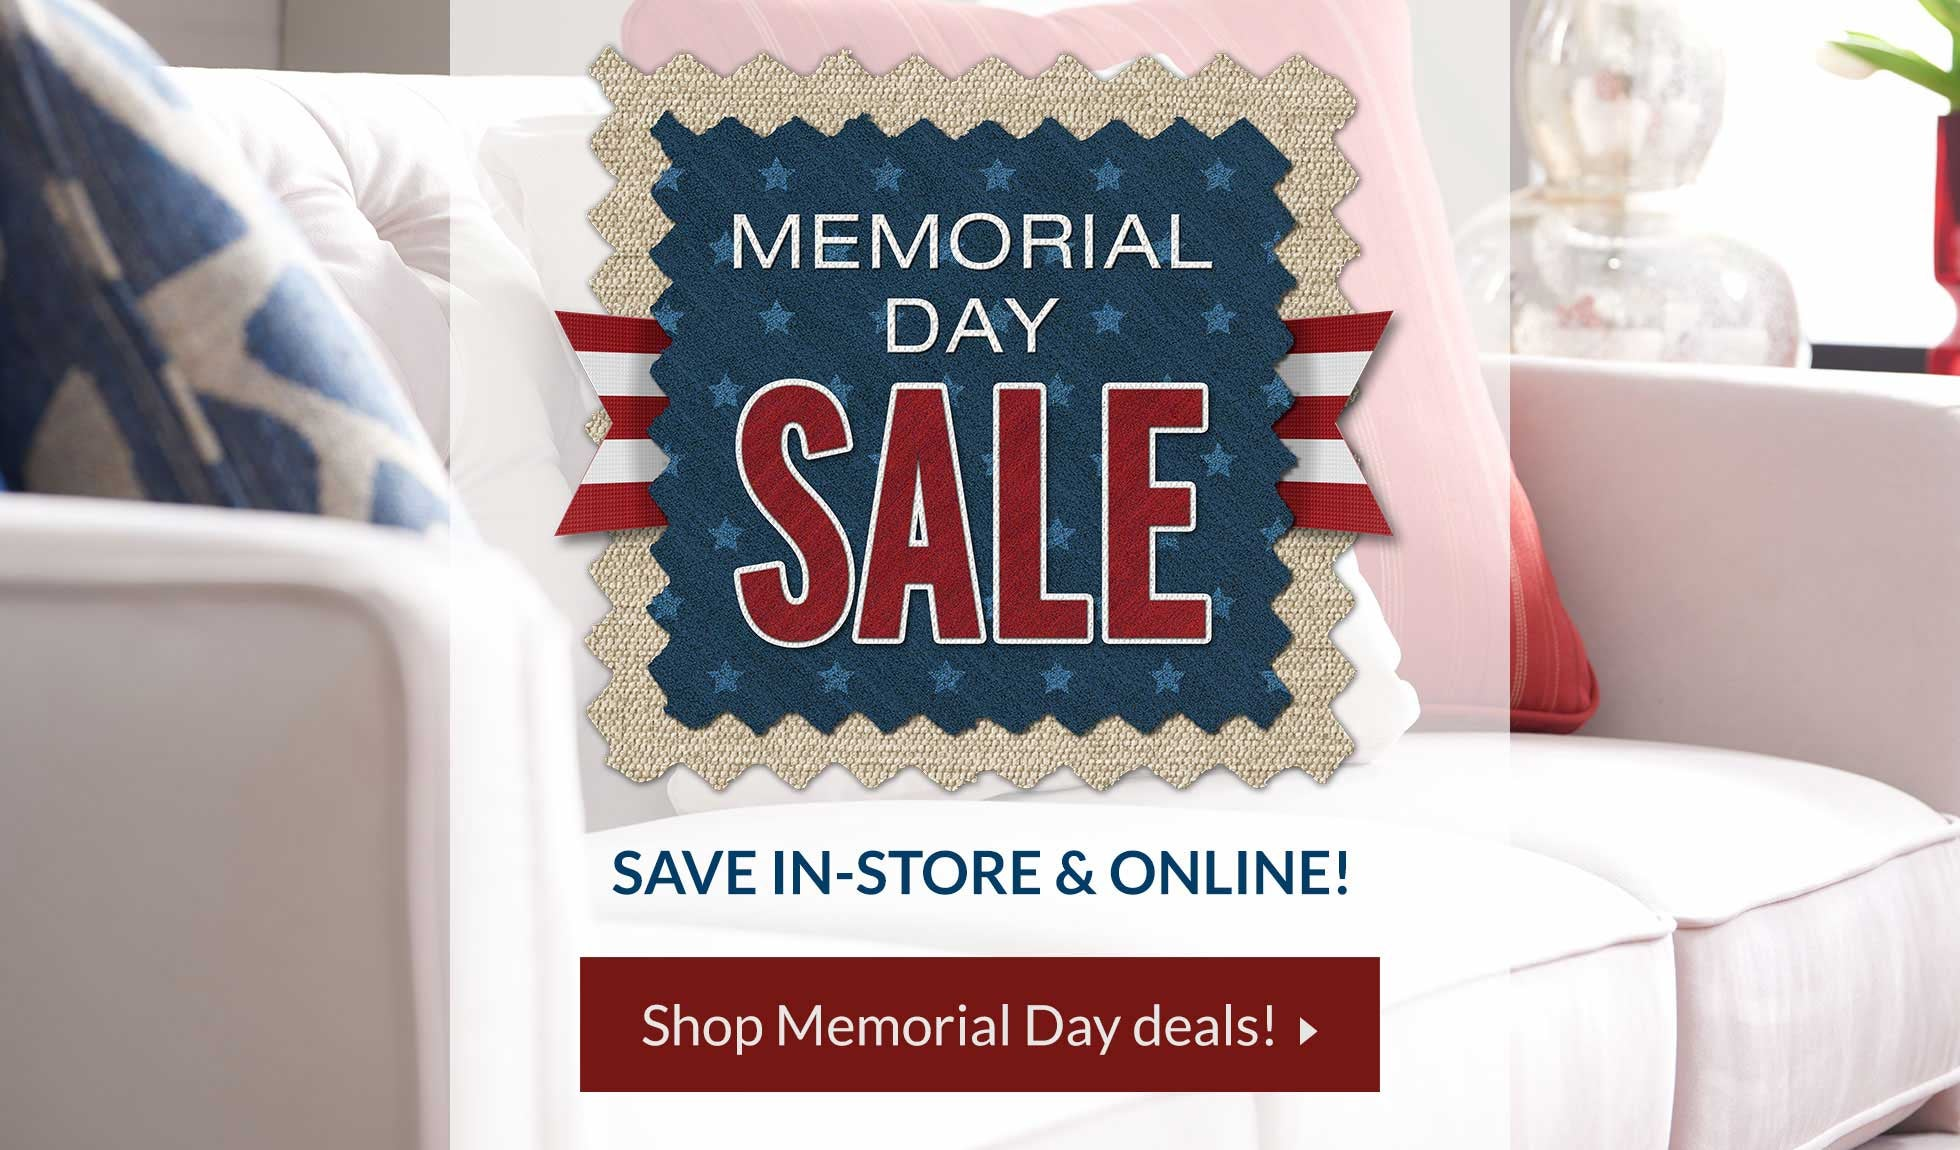 Memorial Day Sale. Save big in-store and online!